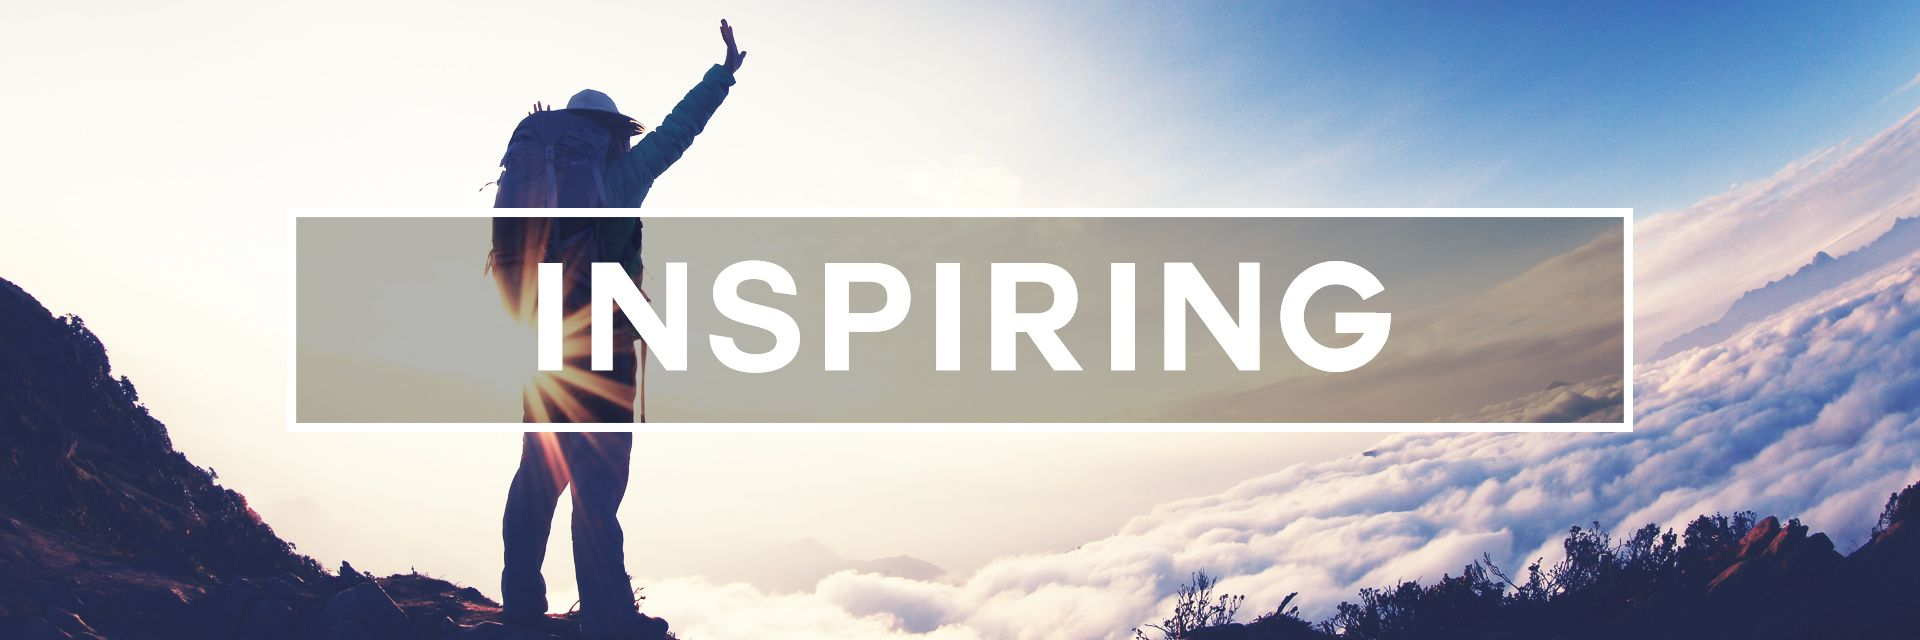 Corporate Motivational Inspiring Upbeat & Uplifting - 11